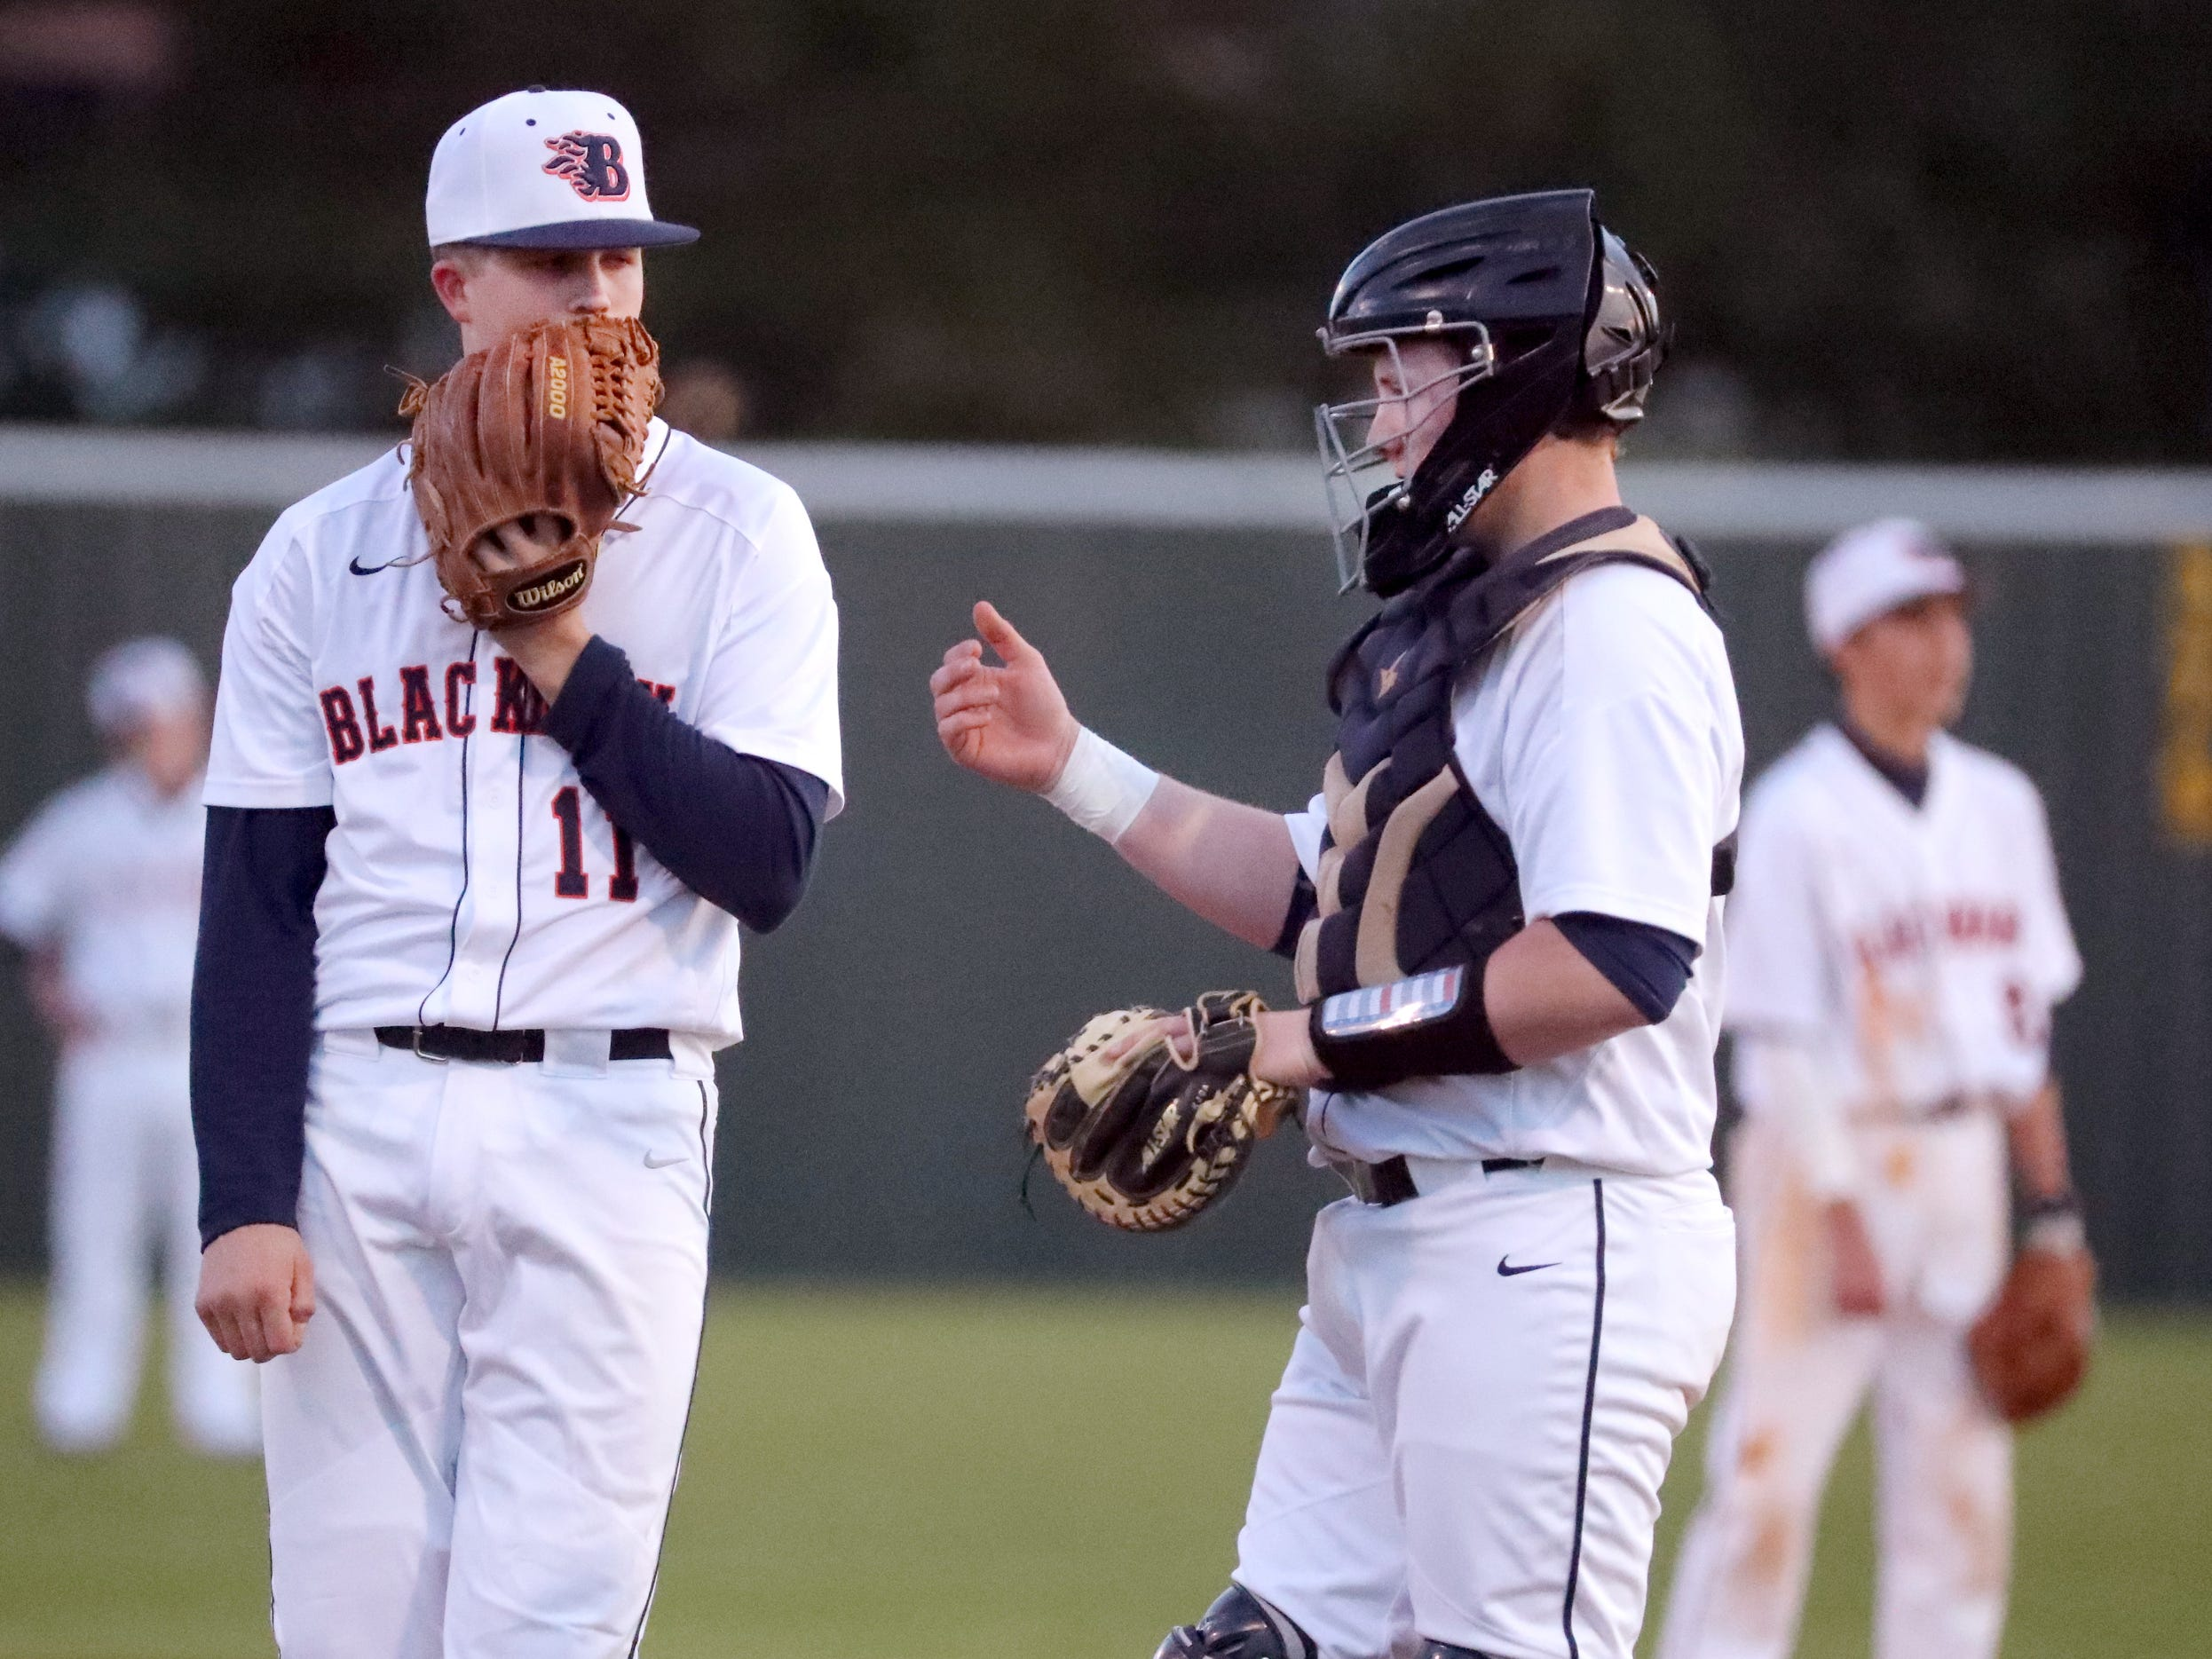 Blackman's pitcher Drew Beam (11) and Blackman's catcher David Milam (10) on the pitcher's mound during the game against Siegel, on Monday, March 11, 2019.